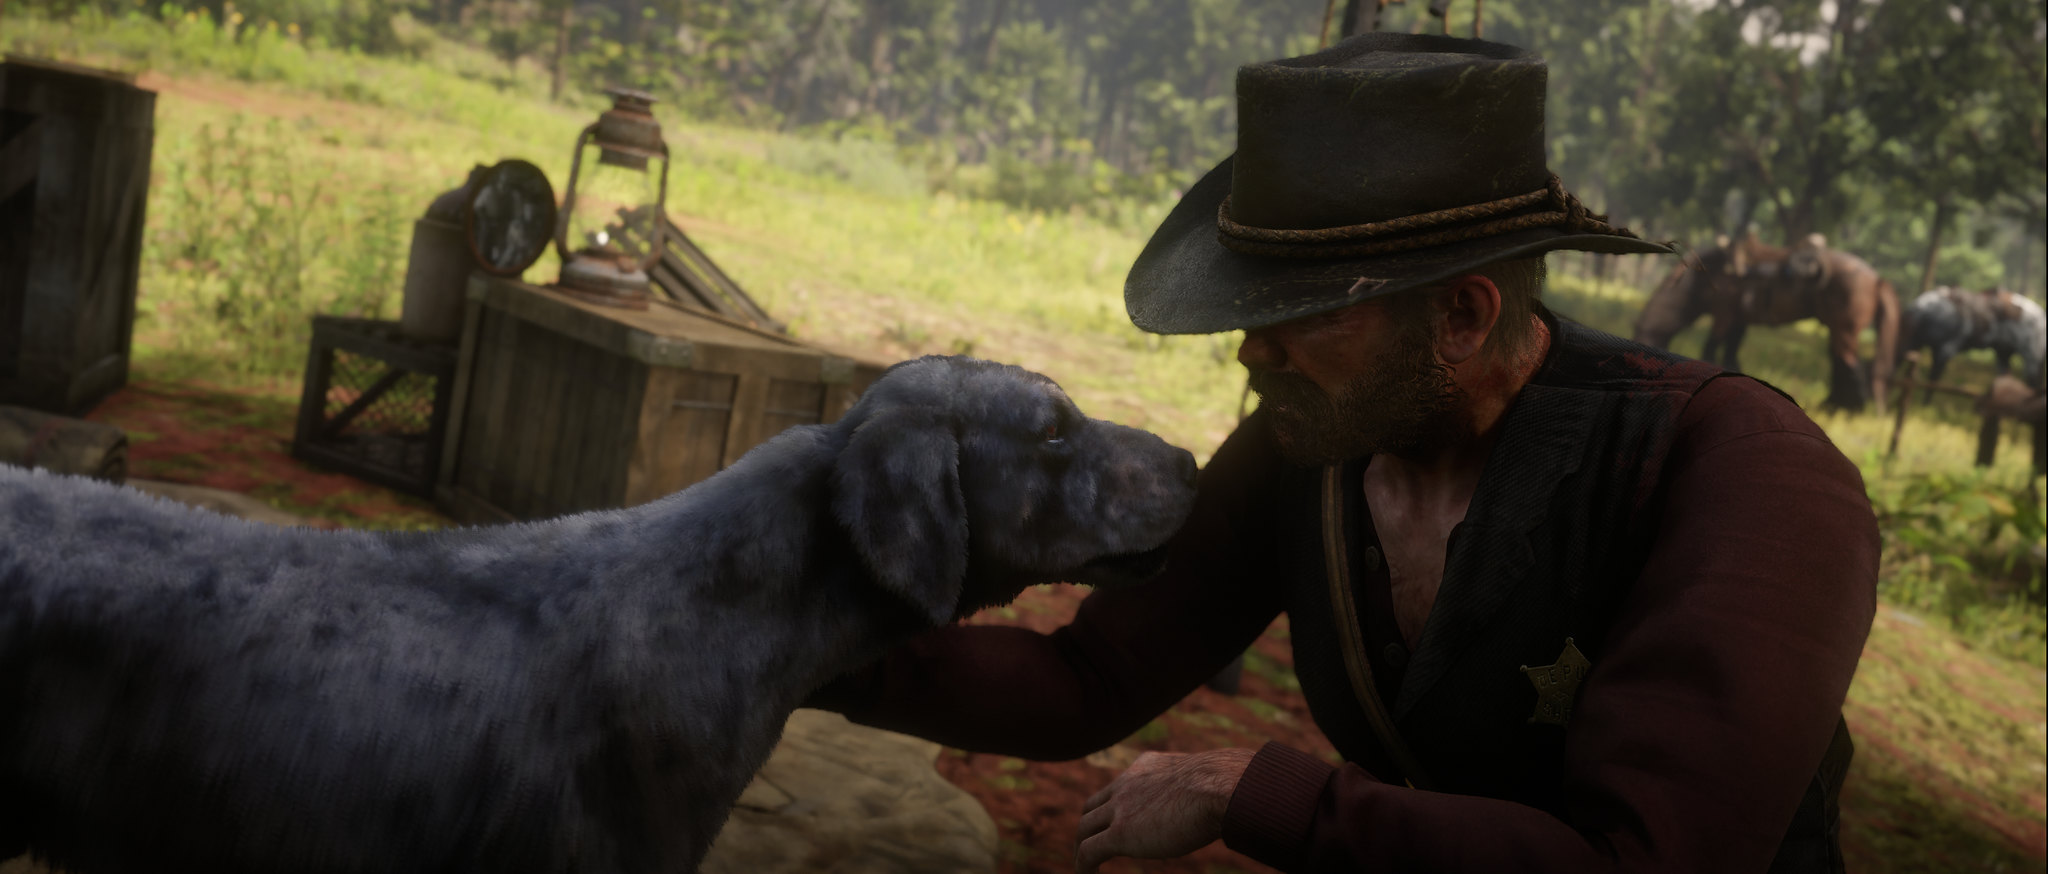 49045366858_74b0ea6e80_k.jpg - Red Dead Redemption 2